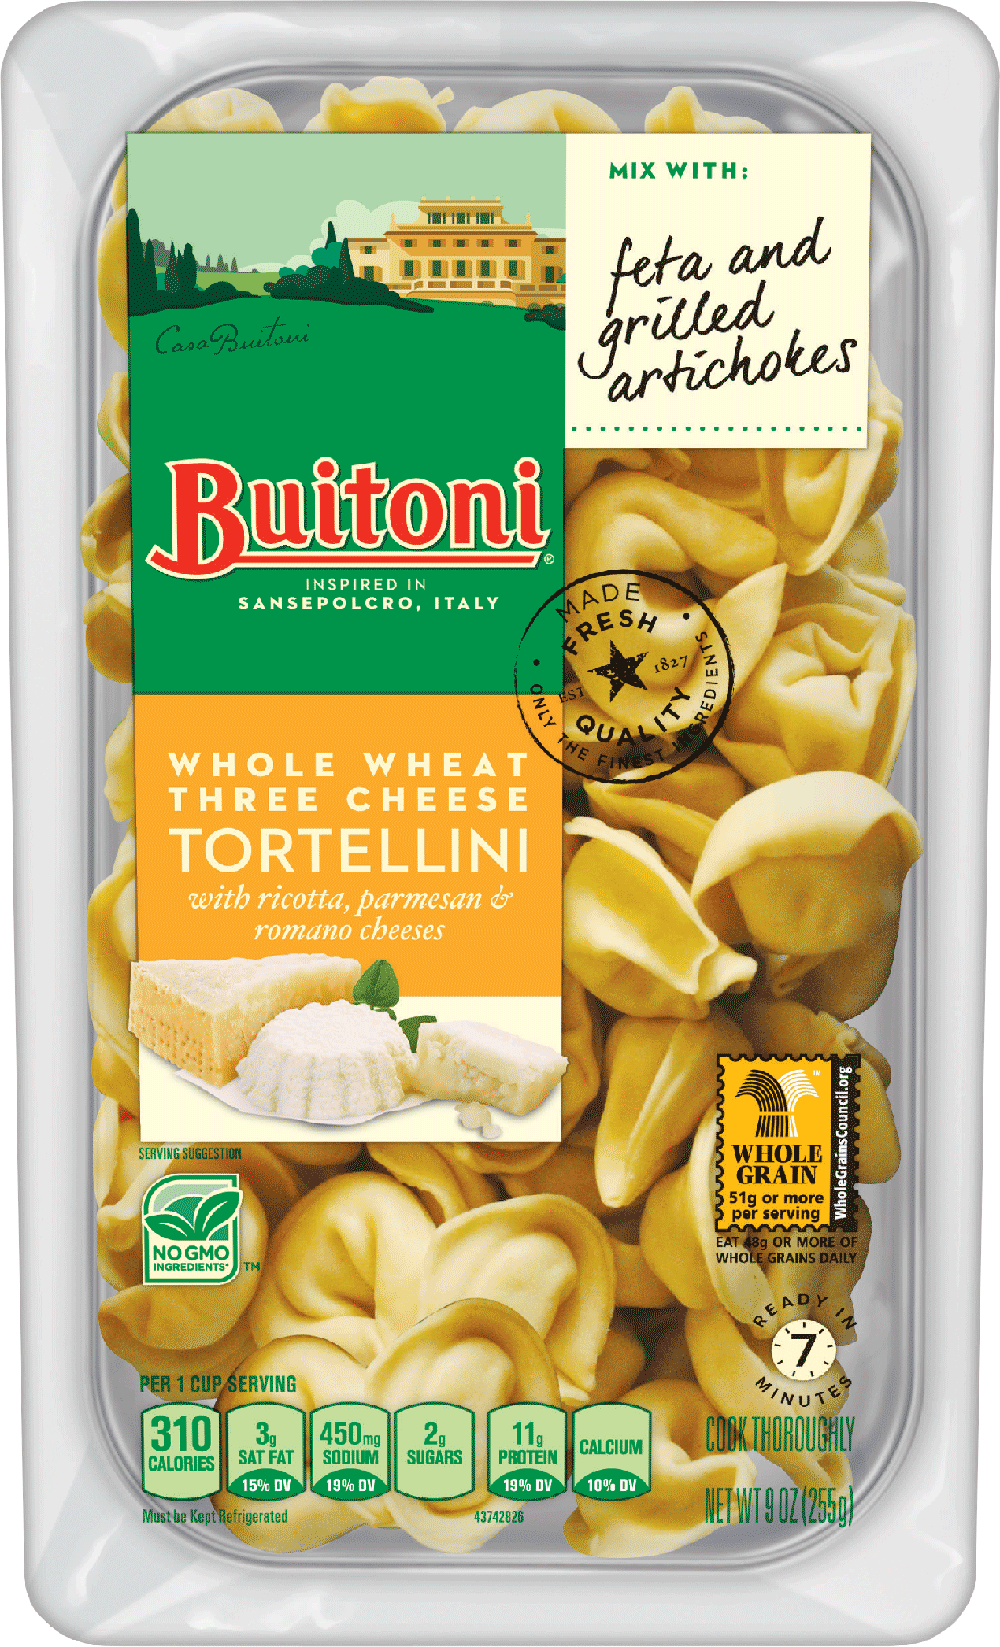 Whole Wheat Three Cheese Tortellini